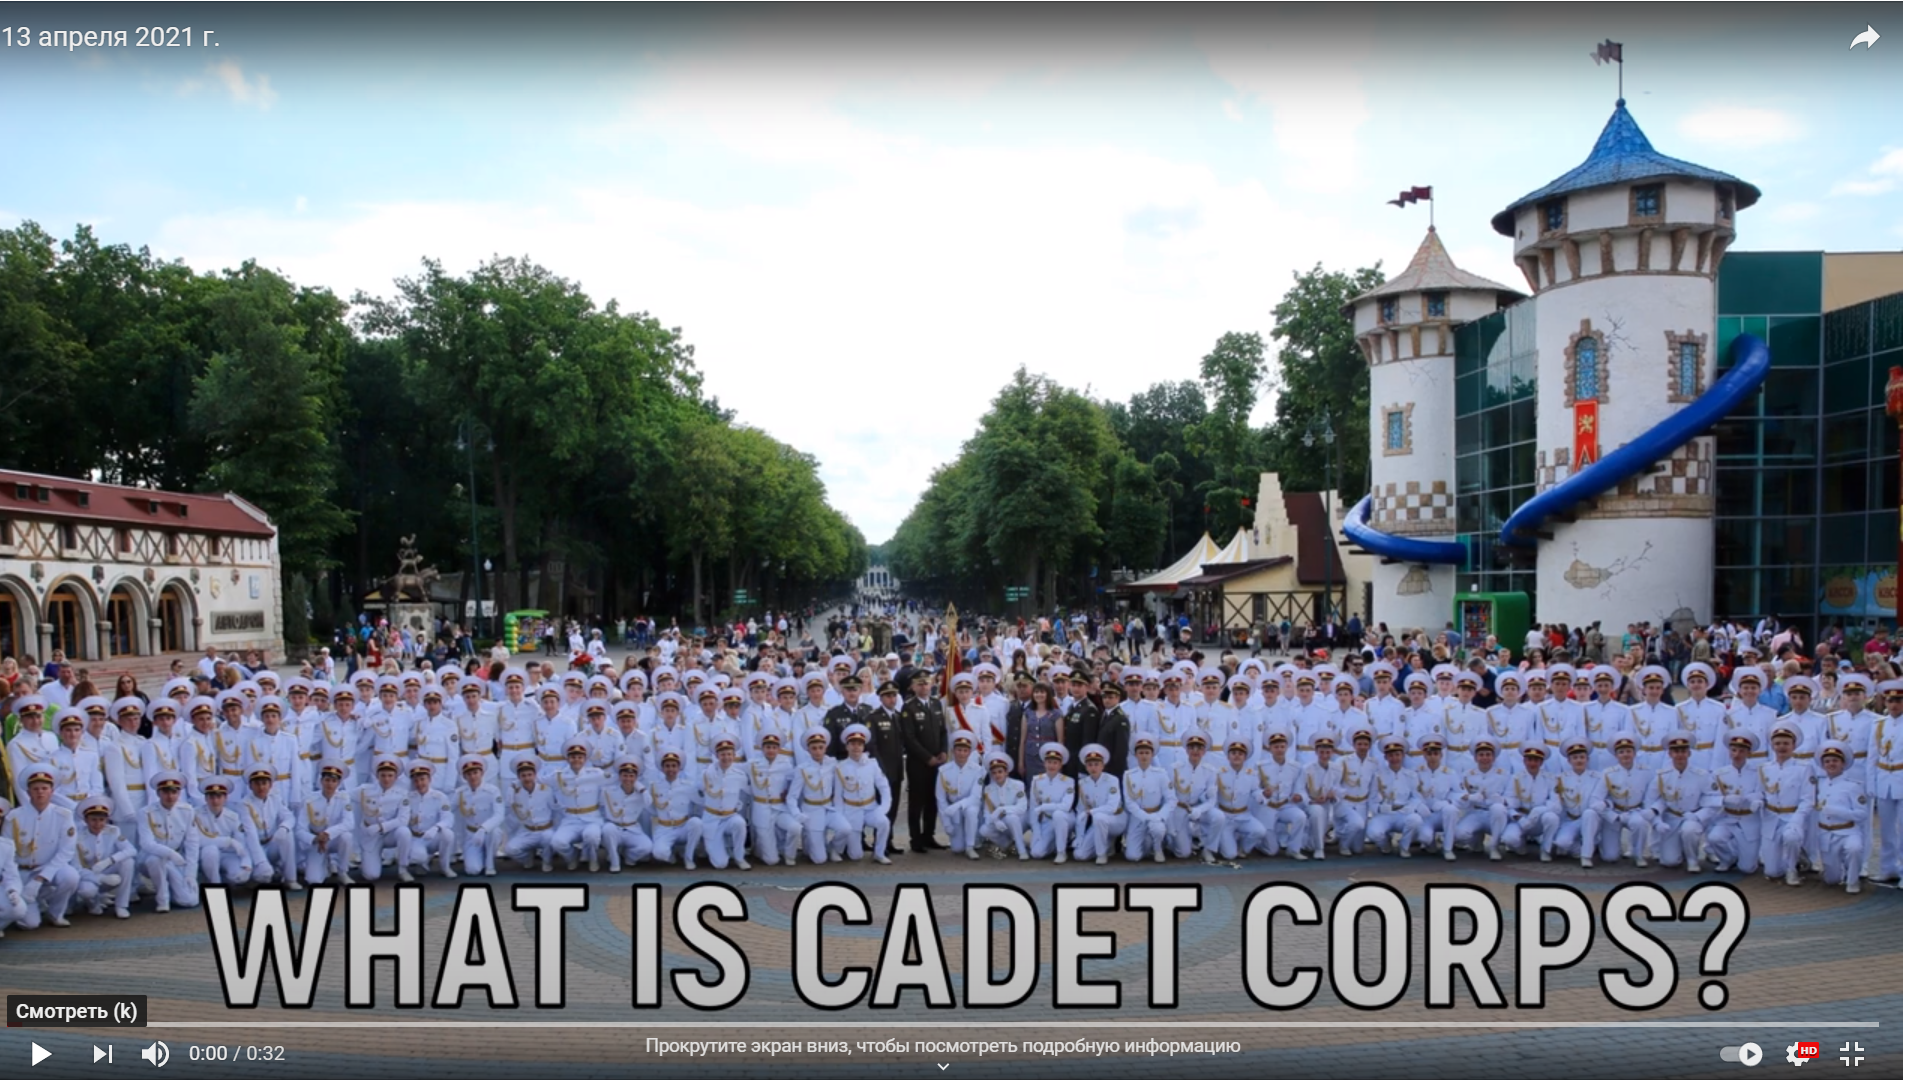 What is Cadet Corps?